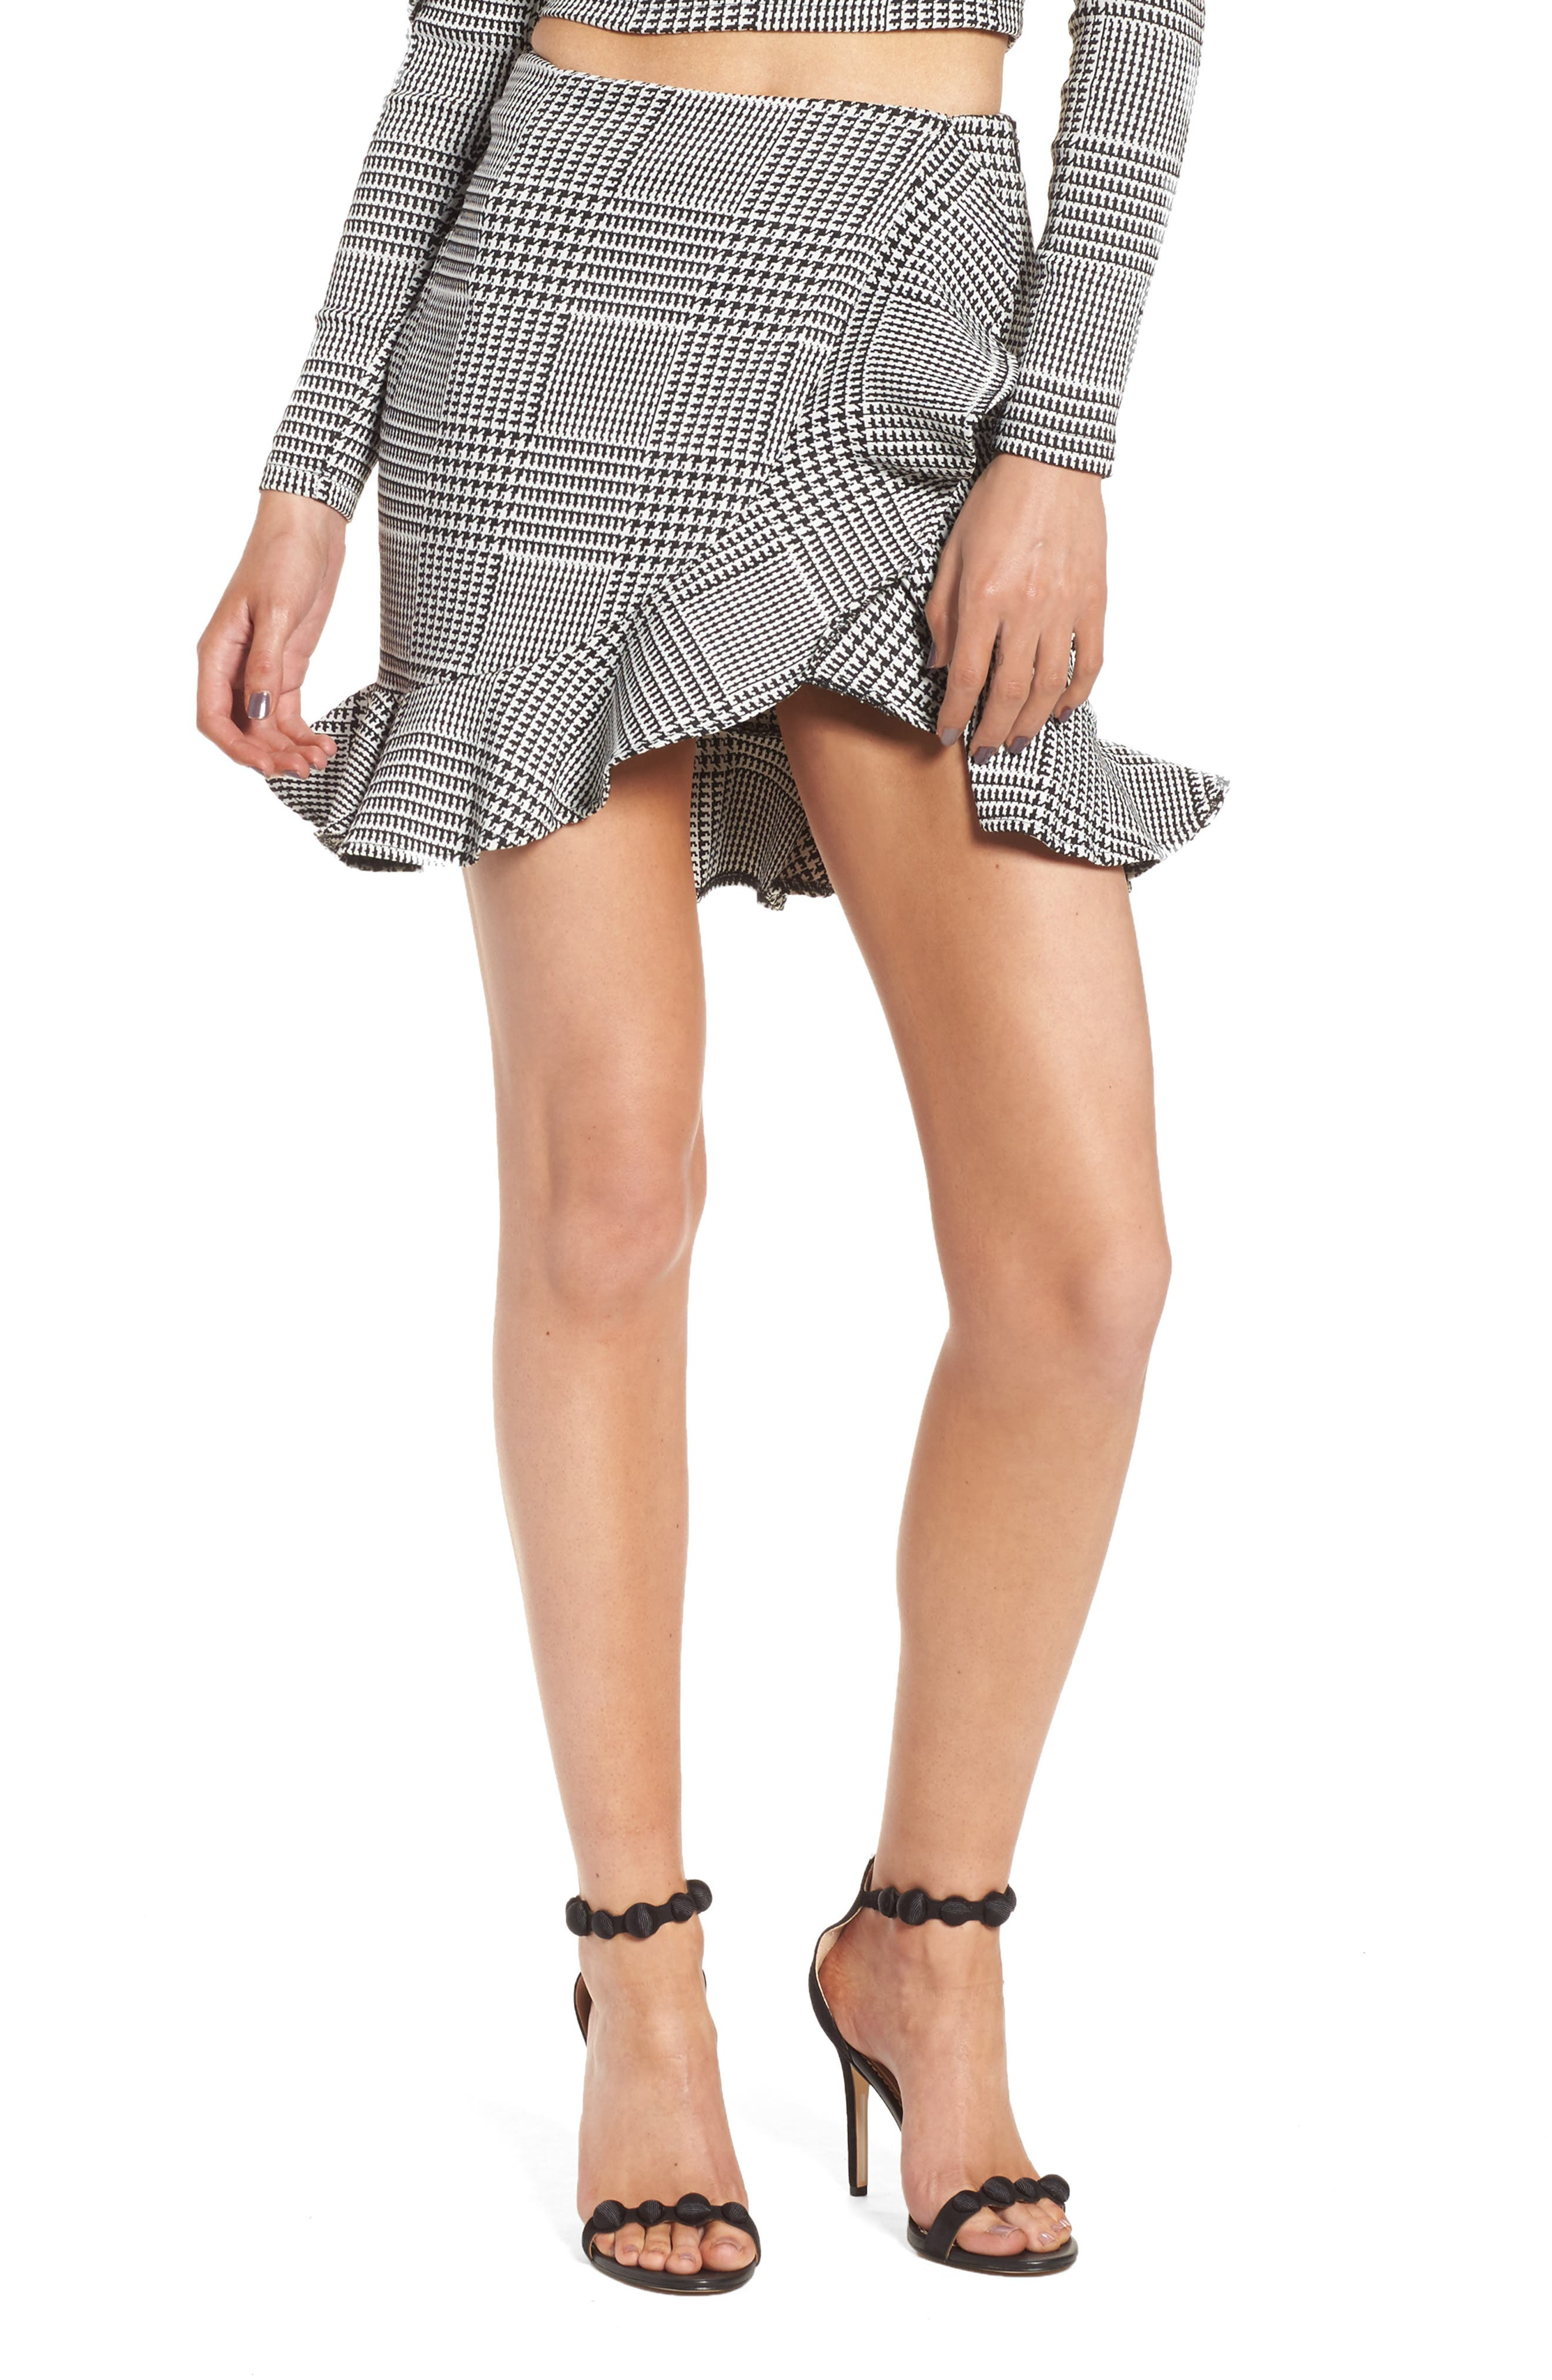 Affection Ruffle Houndstooth Skirt,                             Main thumbnail 1, color,                             Houndstooth Plaid